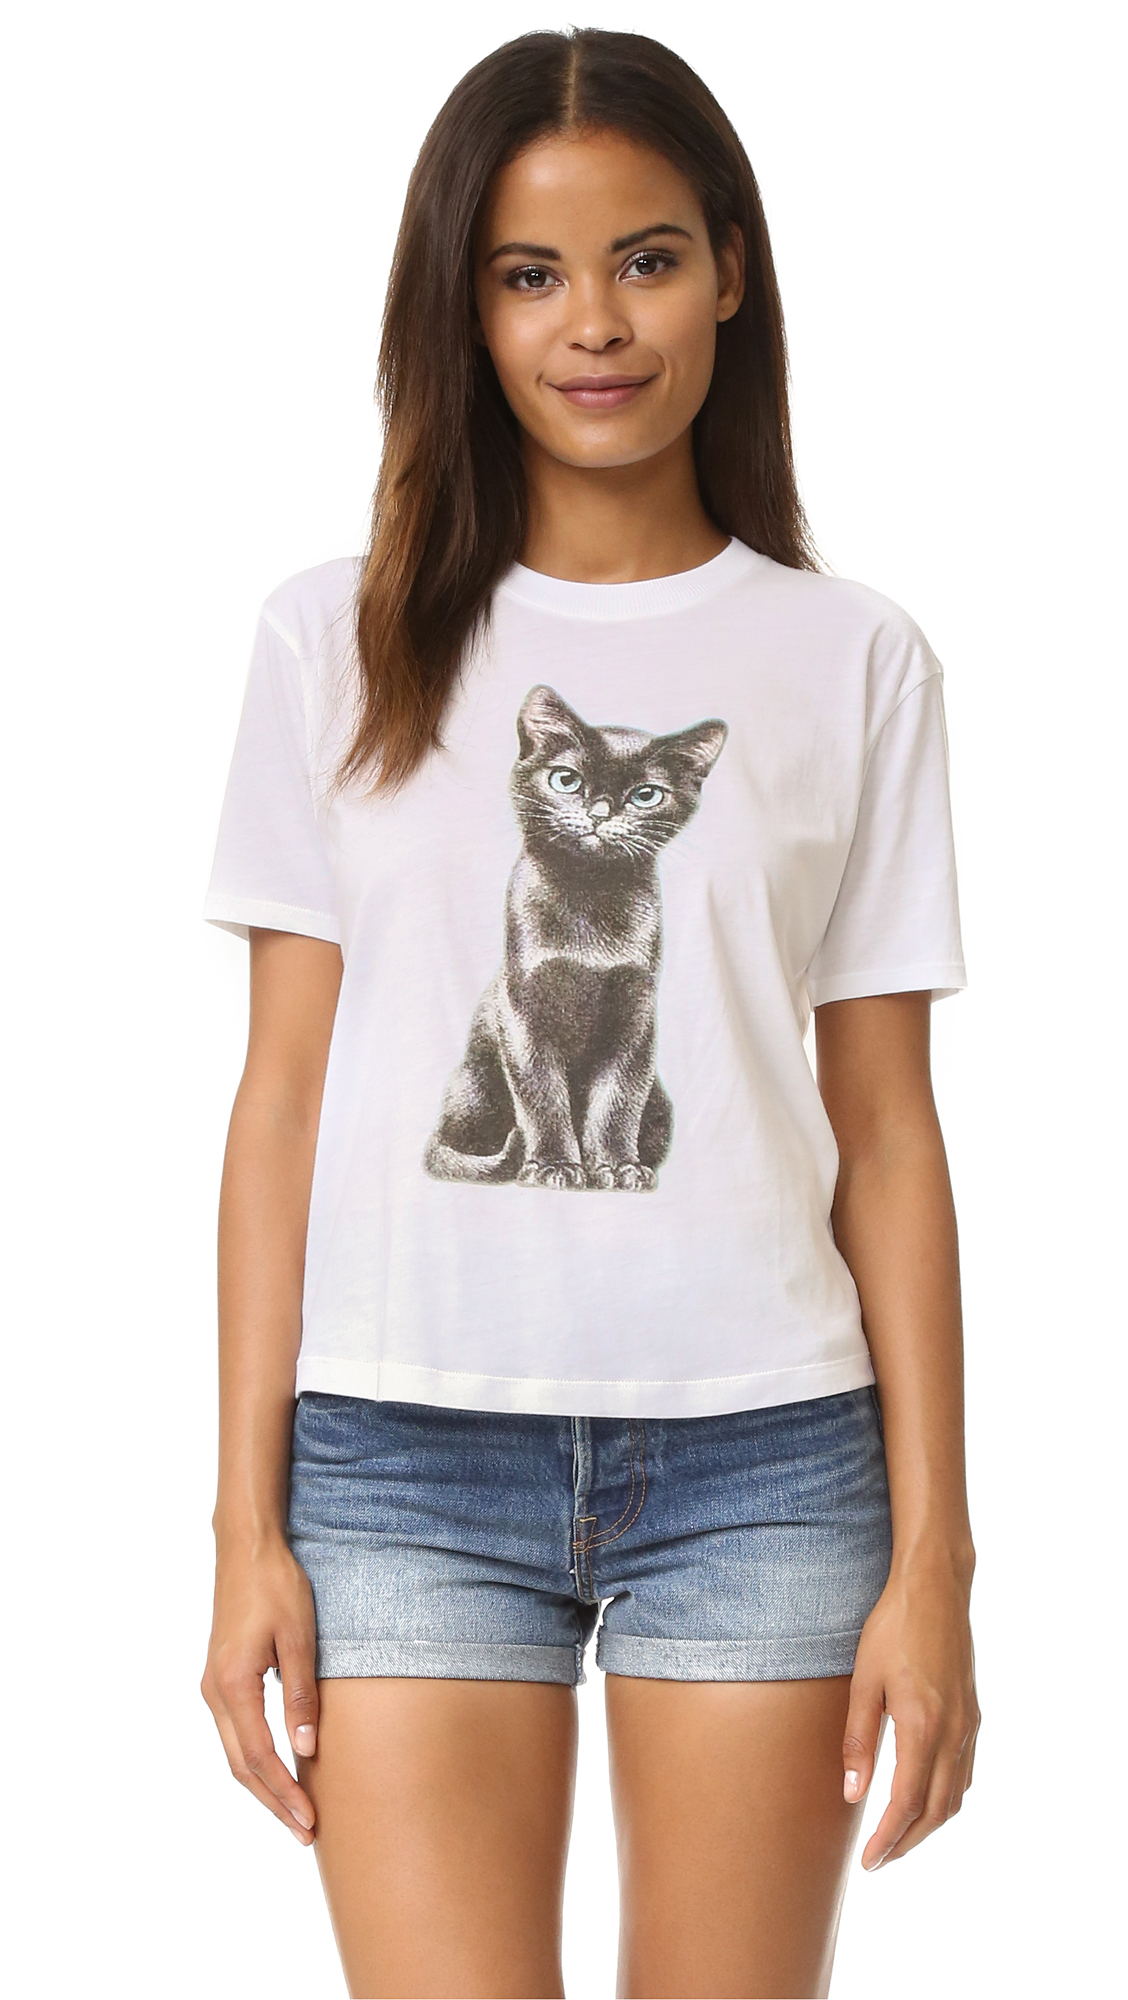 00849a6d292 Paul & Joe Sister Timinou Tee | SHOPBOP